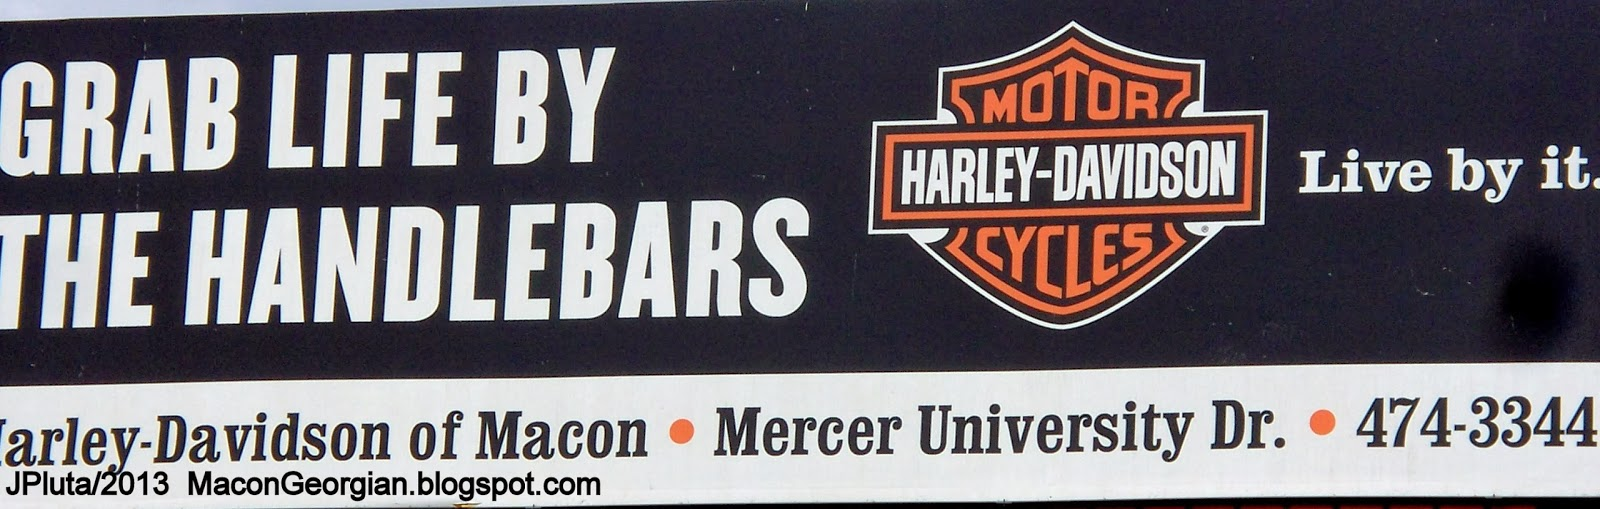 Sportster For Sale Macon Ga >> Texas Harley Davidson Motorcycle Dealers Harley Davidson   Party Invitations Ideas